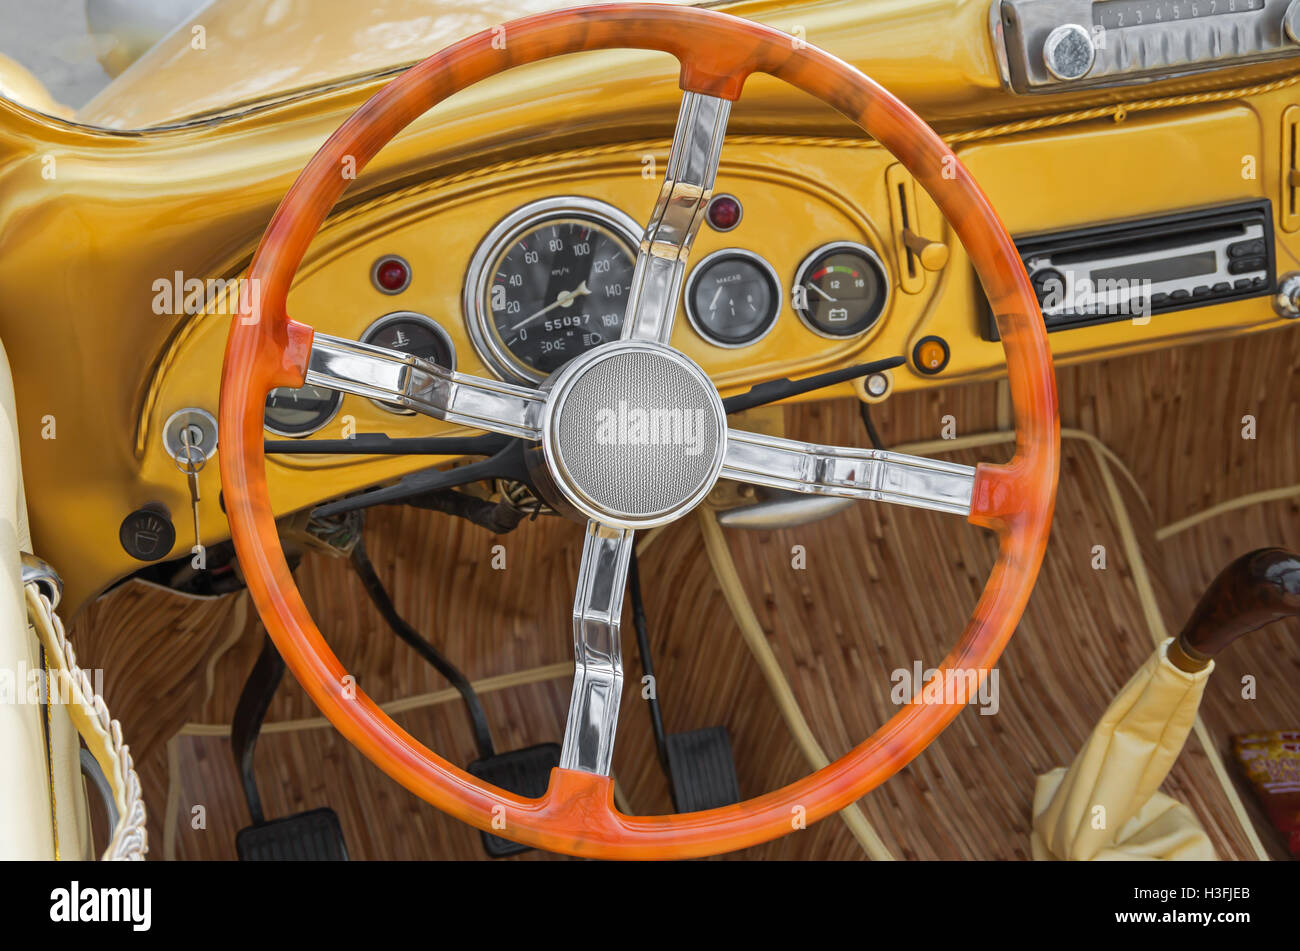 Driving position vintage yellow car after a recent upgrade - Stock Image